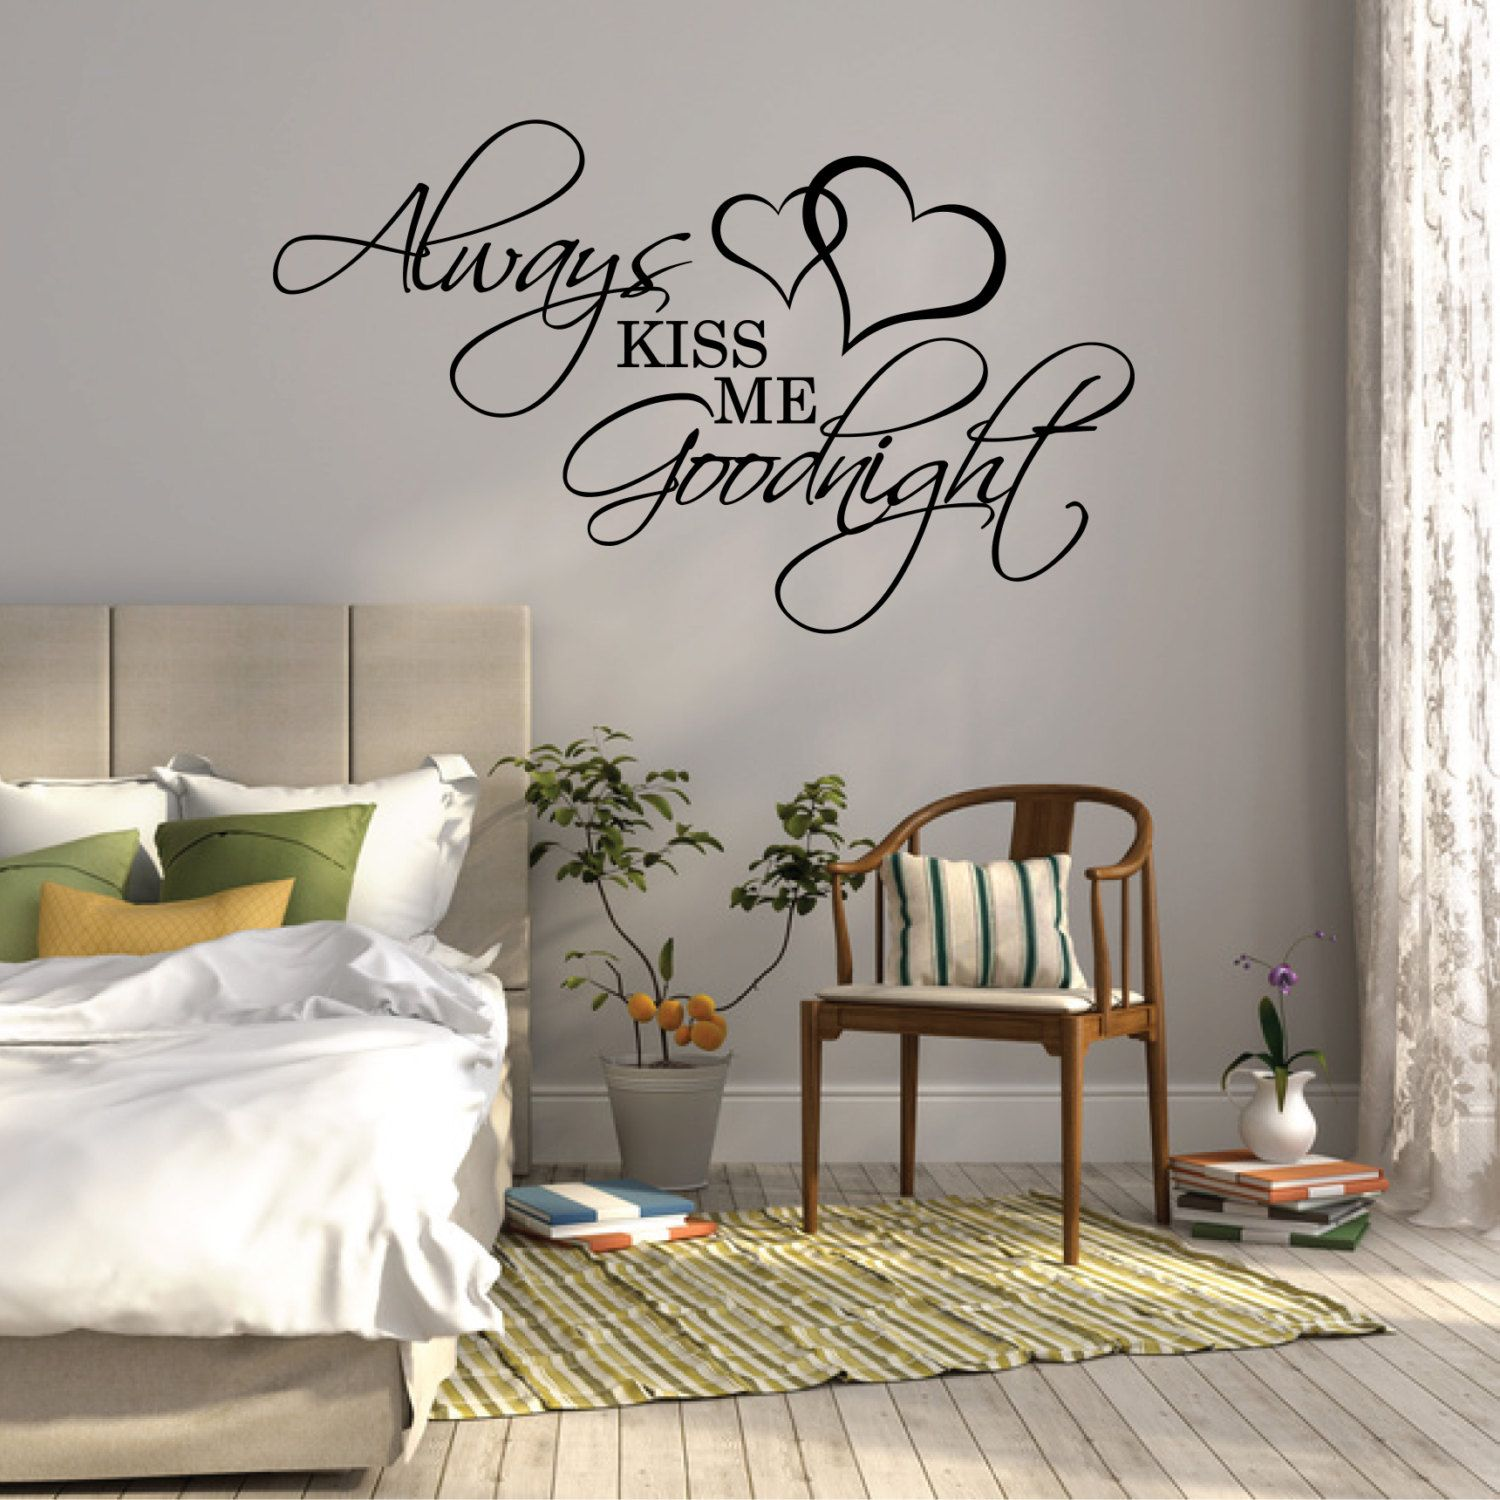 Wall sticker quote always kiss me goodnight over bed for Room decor wall